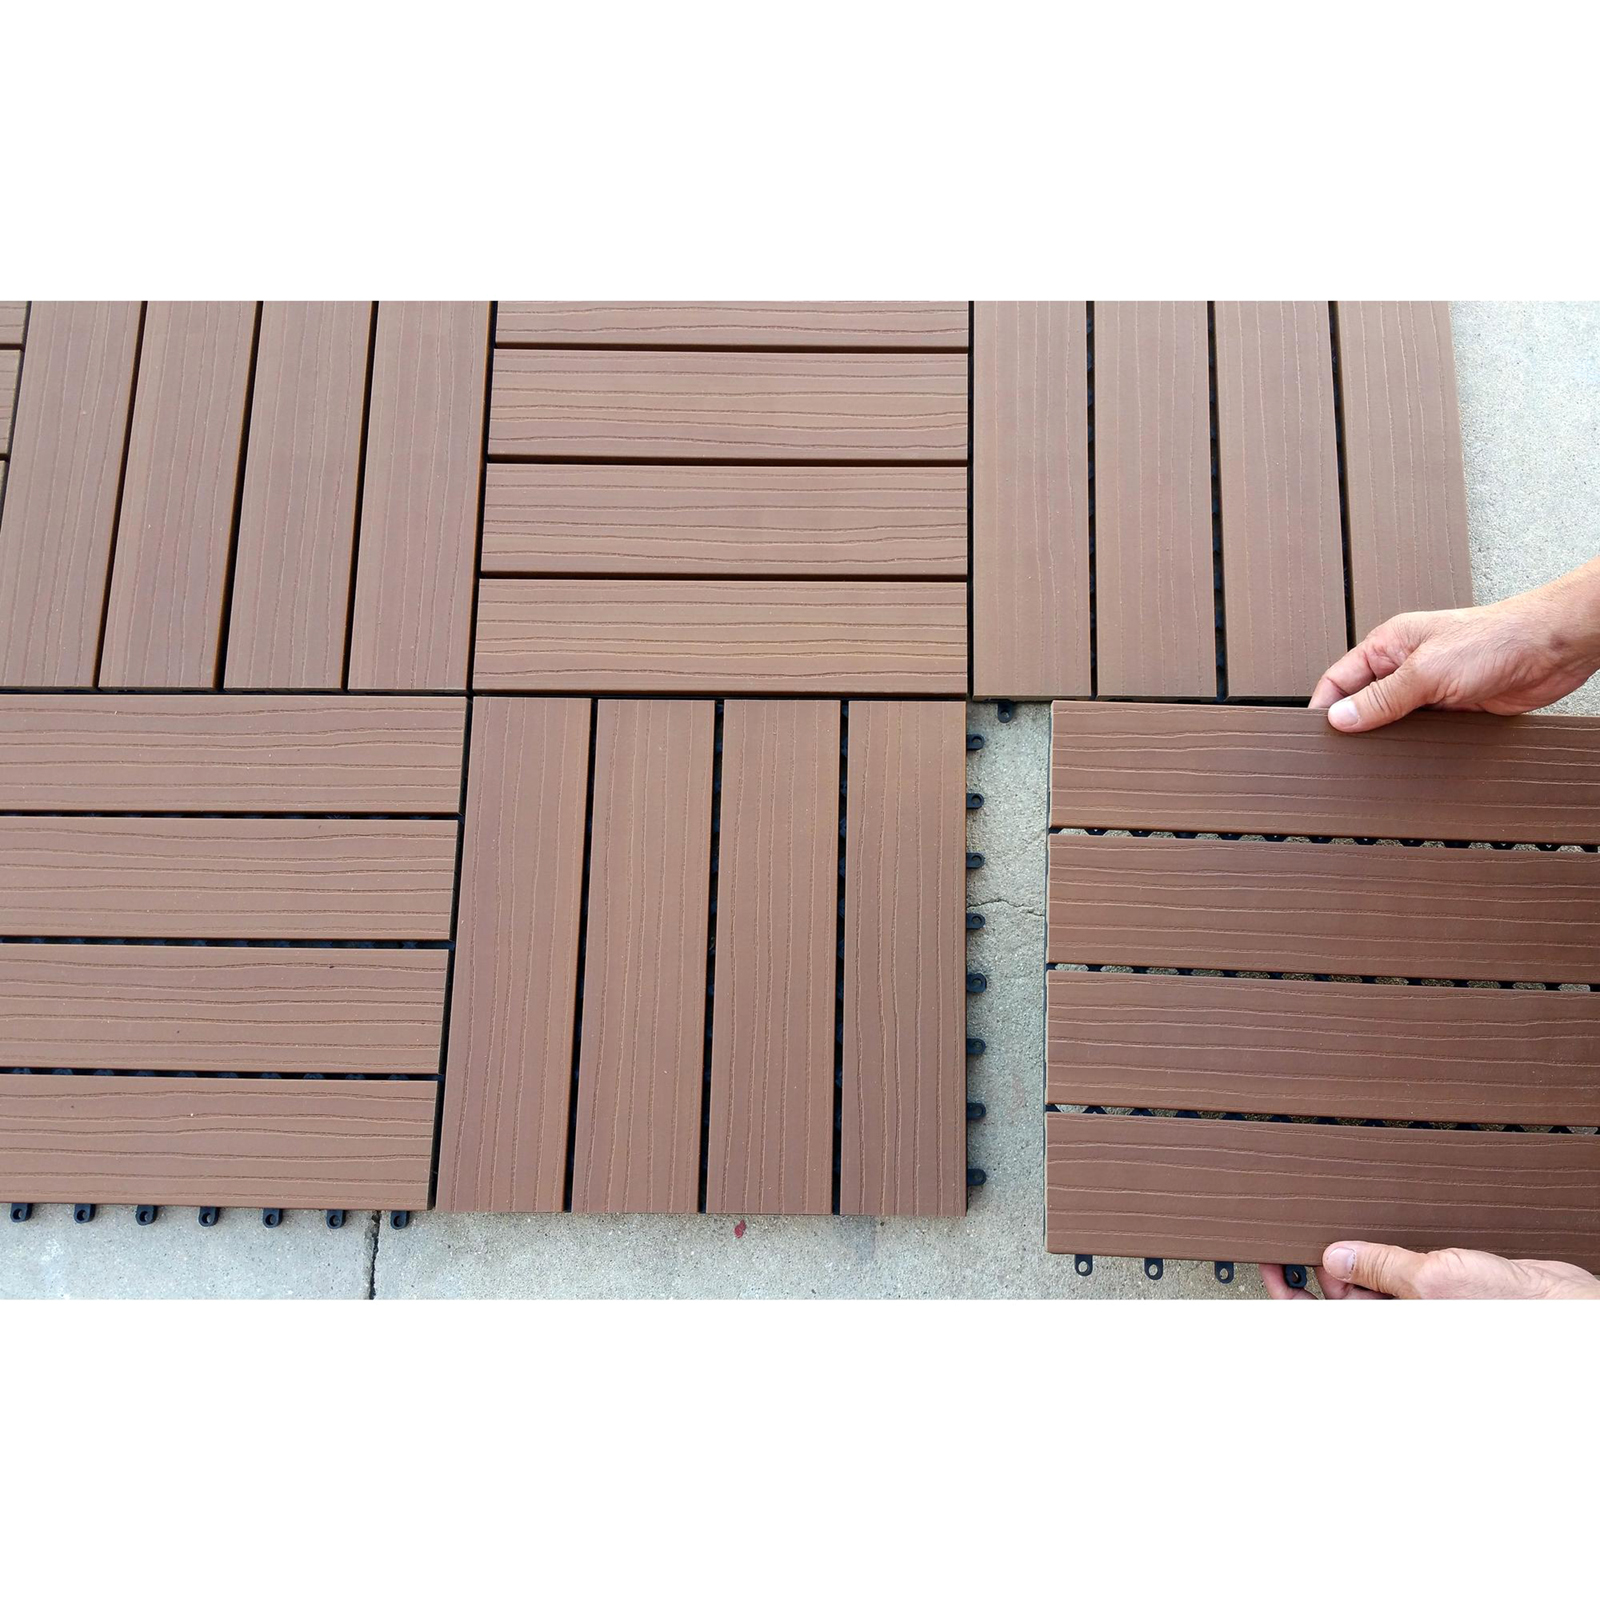 Composite Deck Tiles Vifah Composite Interlocking Deck Tiles Sears Marketplace